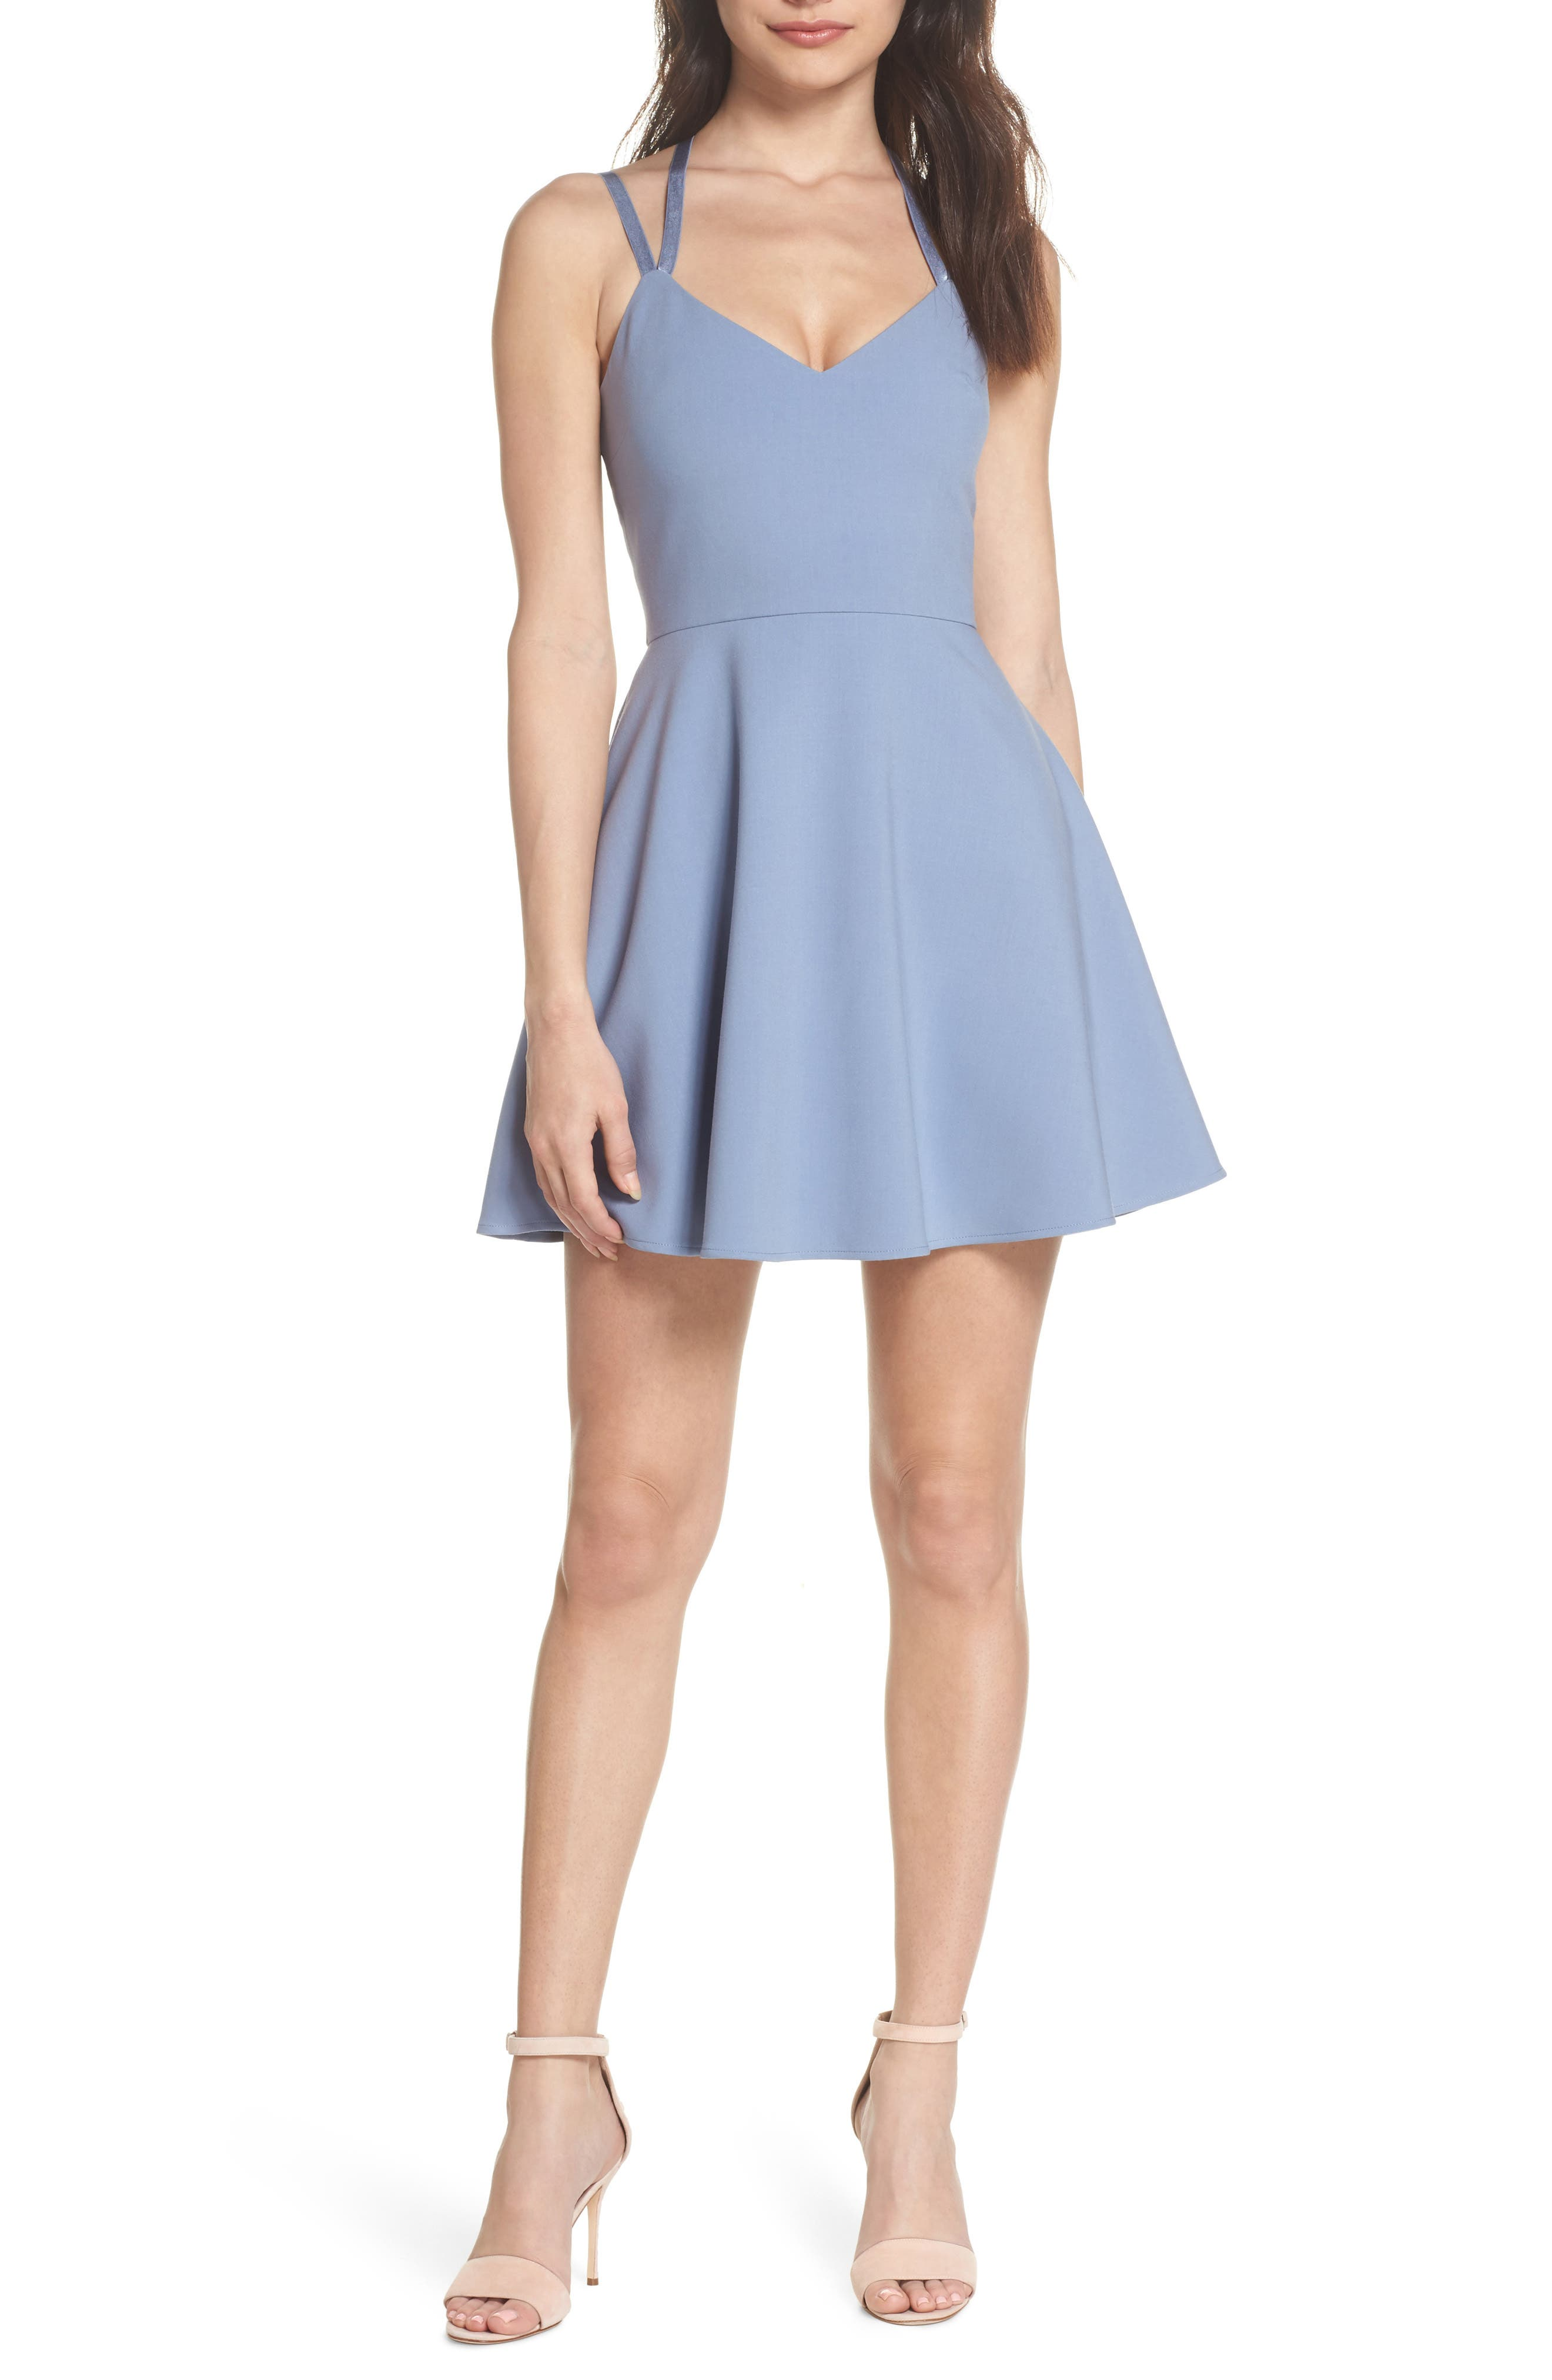 Whisper Light Fit & Flare Dress,                             Main thumbnail 1, color,                             400